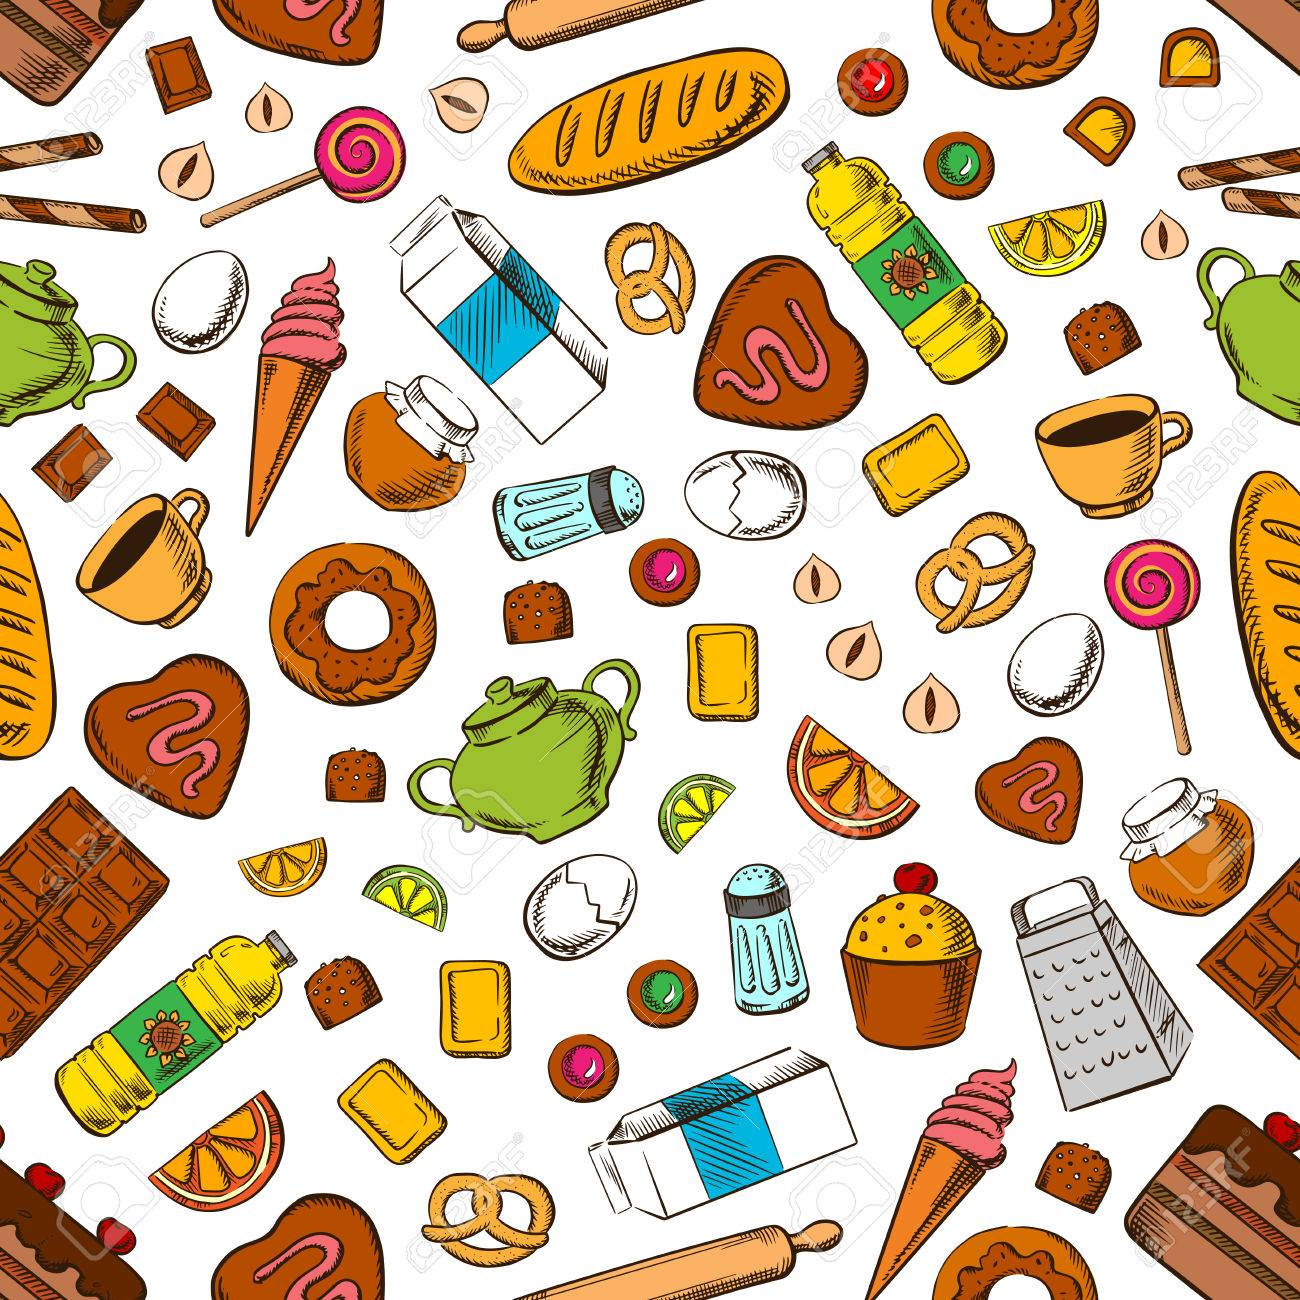 Daily Meal Seamless Background Wallpaper With Pattern Of Breakfast Royalty Free Cliparts Vectors And Stock Illustration Image 62639552